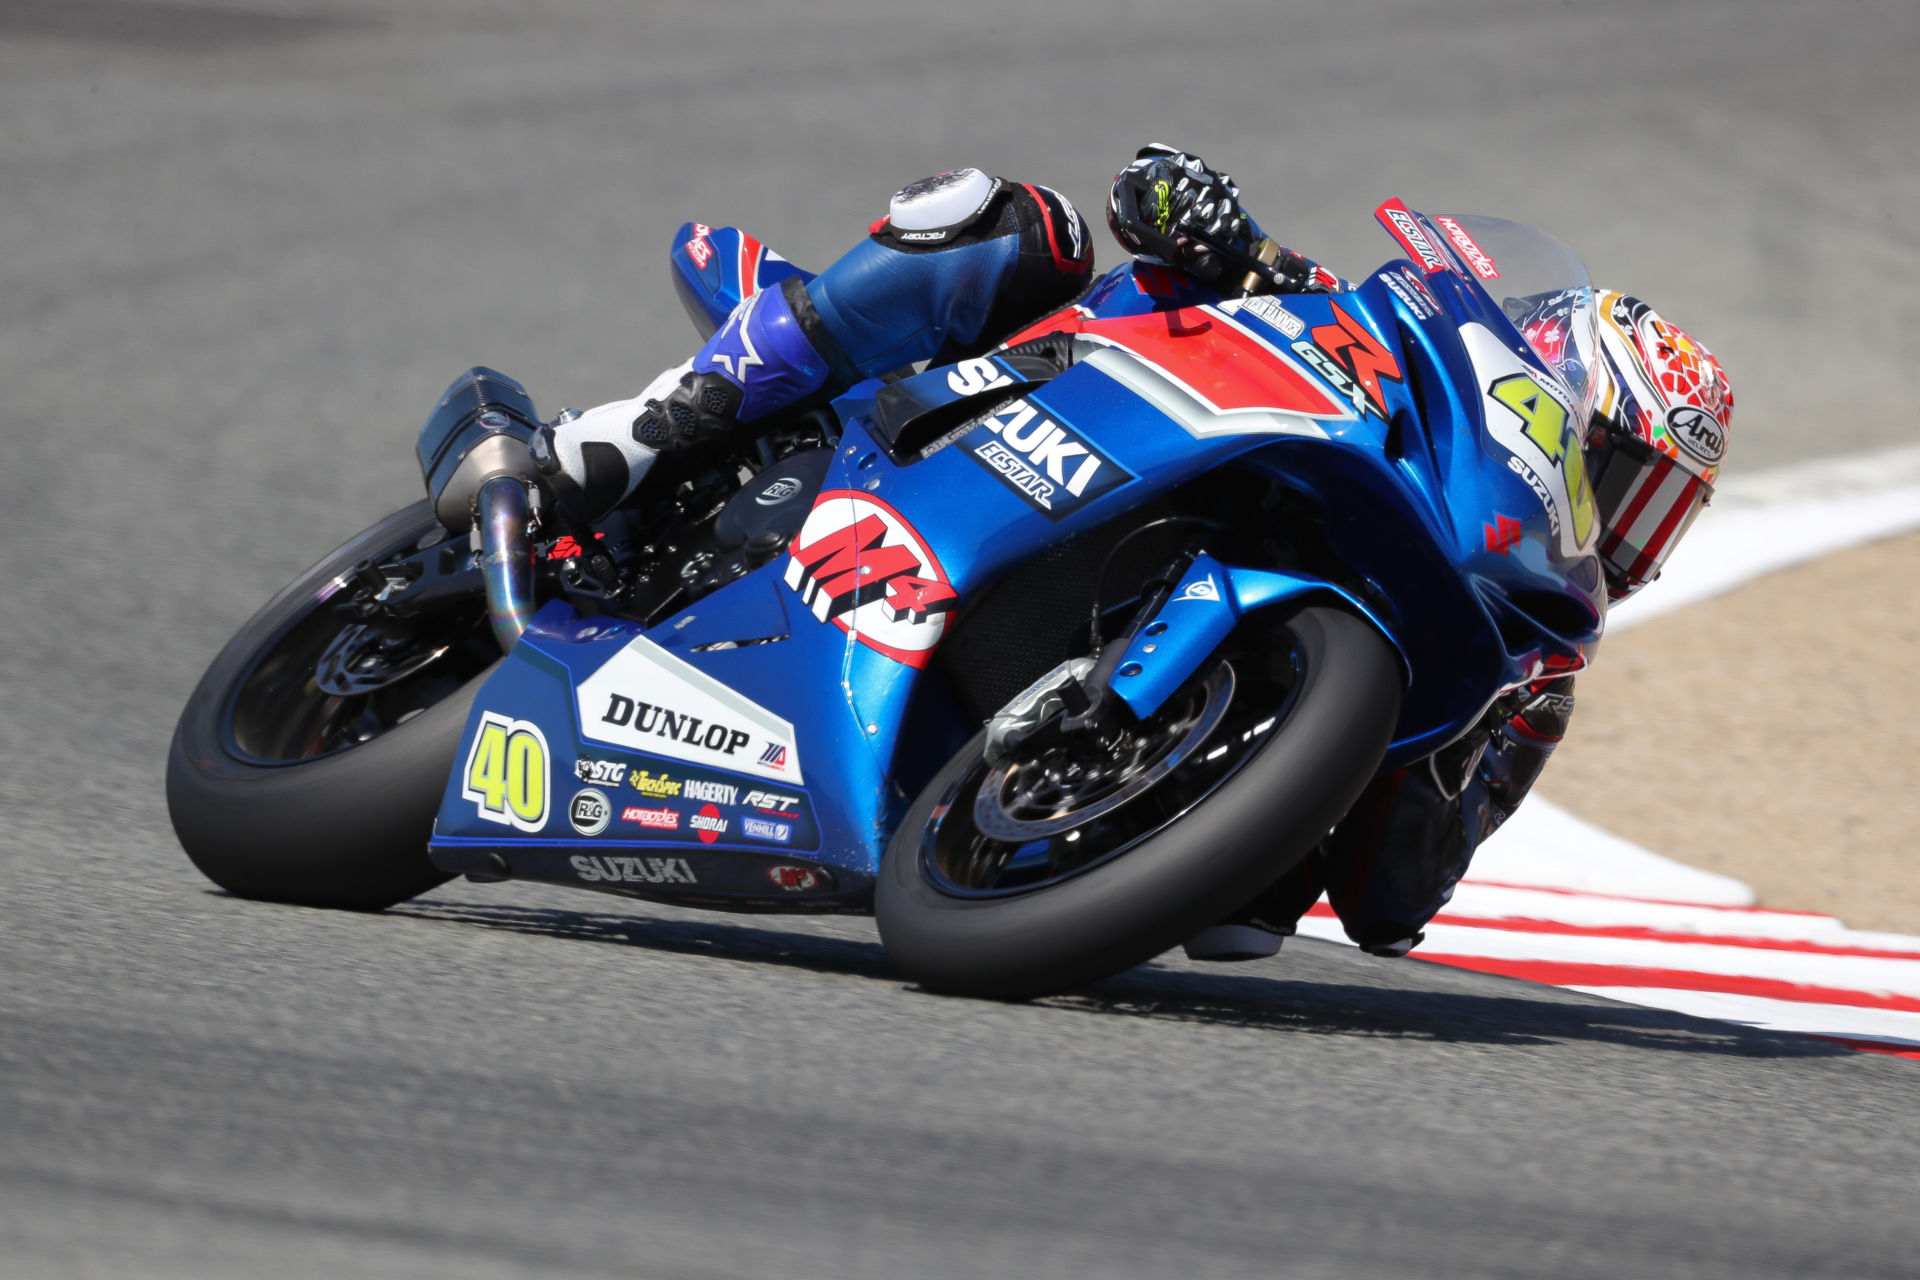 Sean Dylan Kelly (40) at speed at Laguna Seca. Photo by Brian J. Nelson.